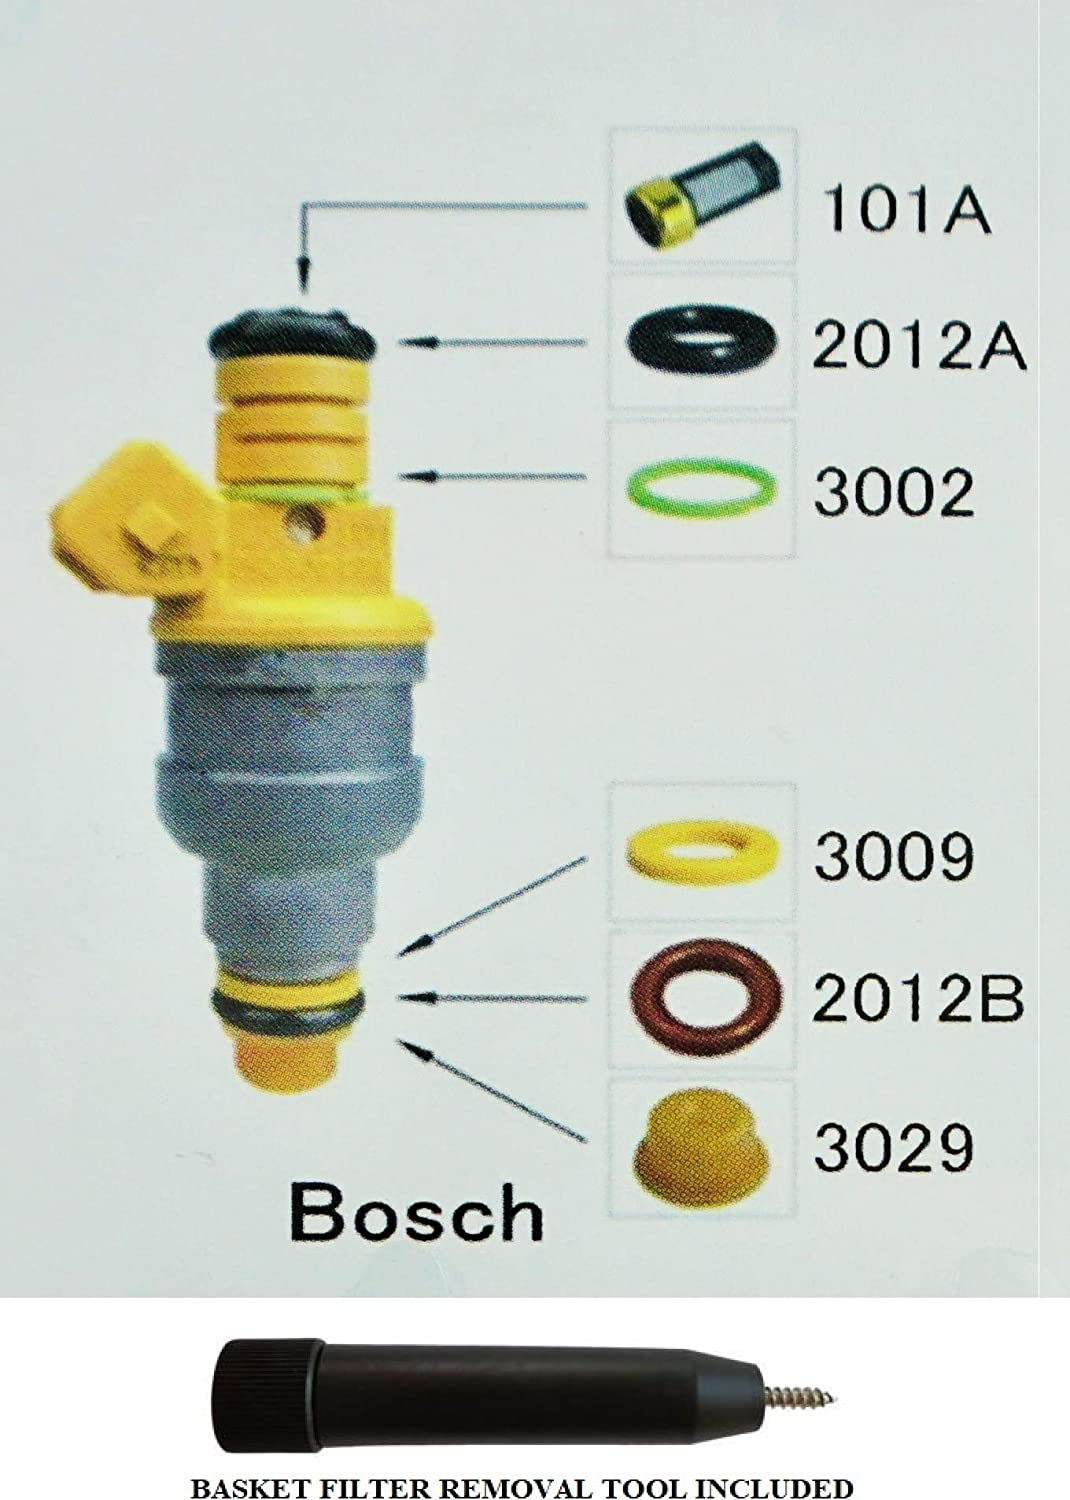 Complete Fuel Injector Rebuild Clearance SALE Limited Max 69% OFF time Kit Bosch with Optional for Fil